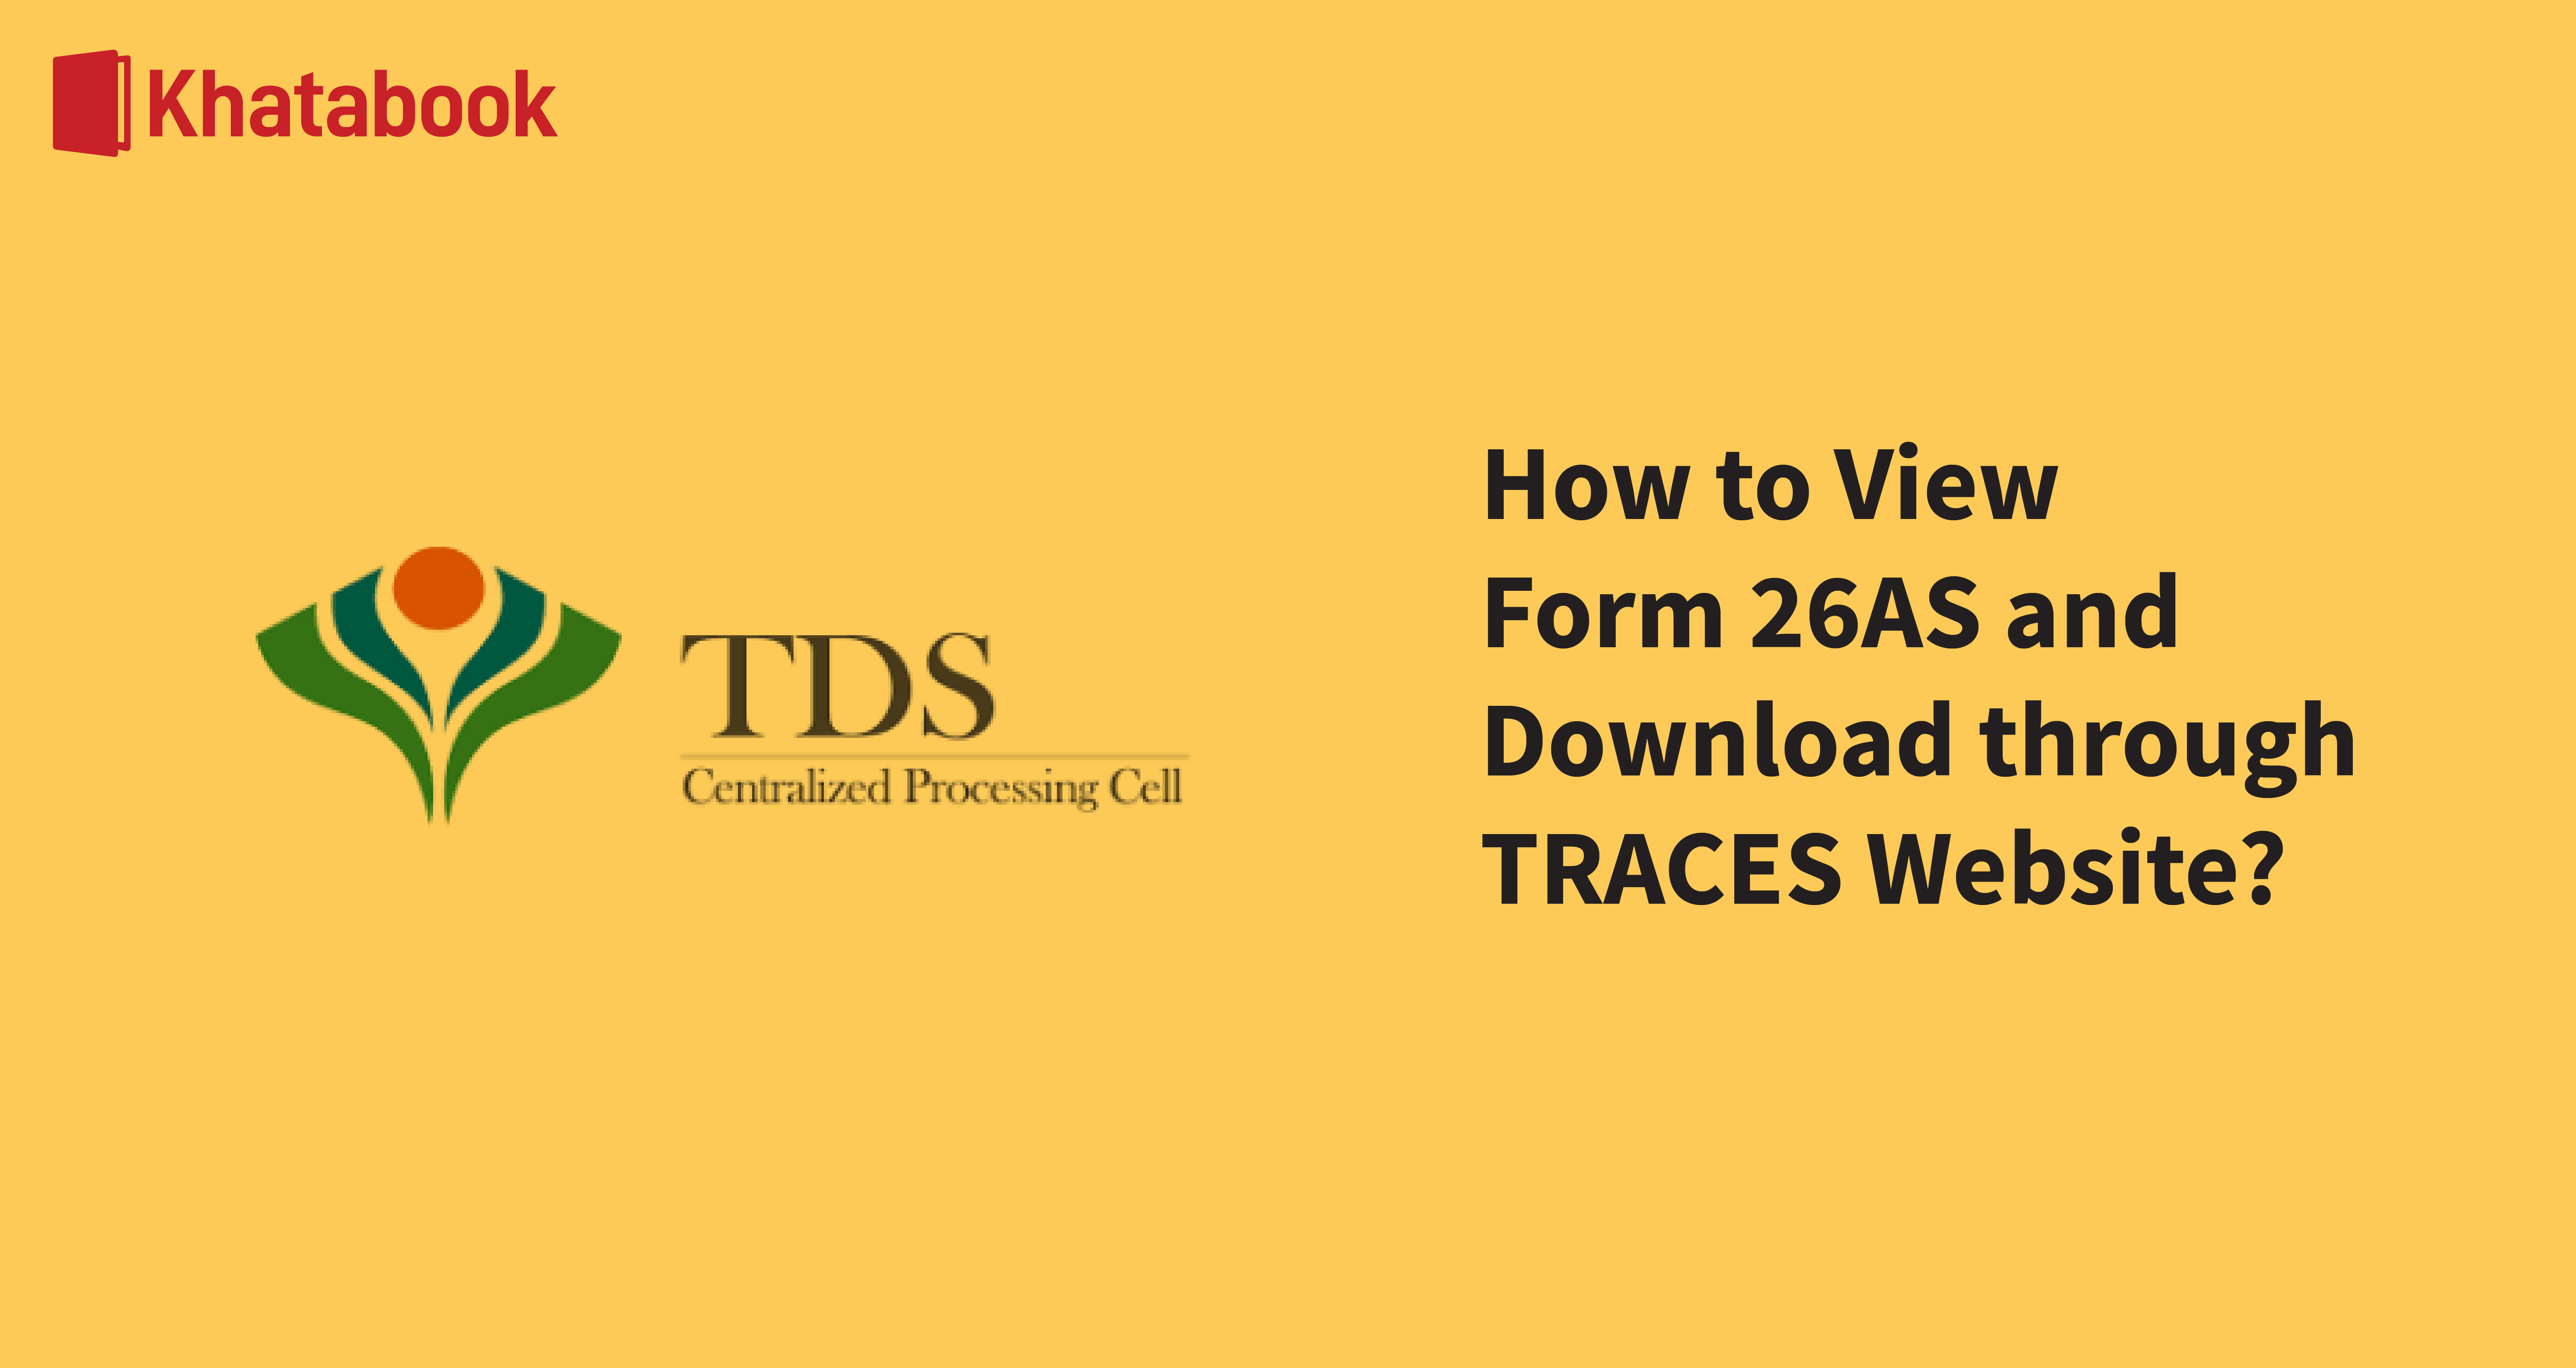 How to View & Download Form 26as from The Traces Website?